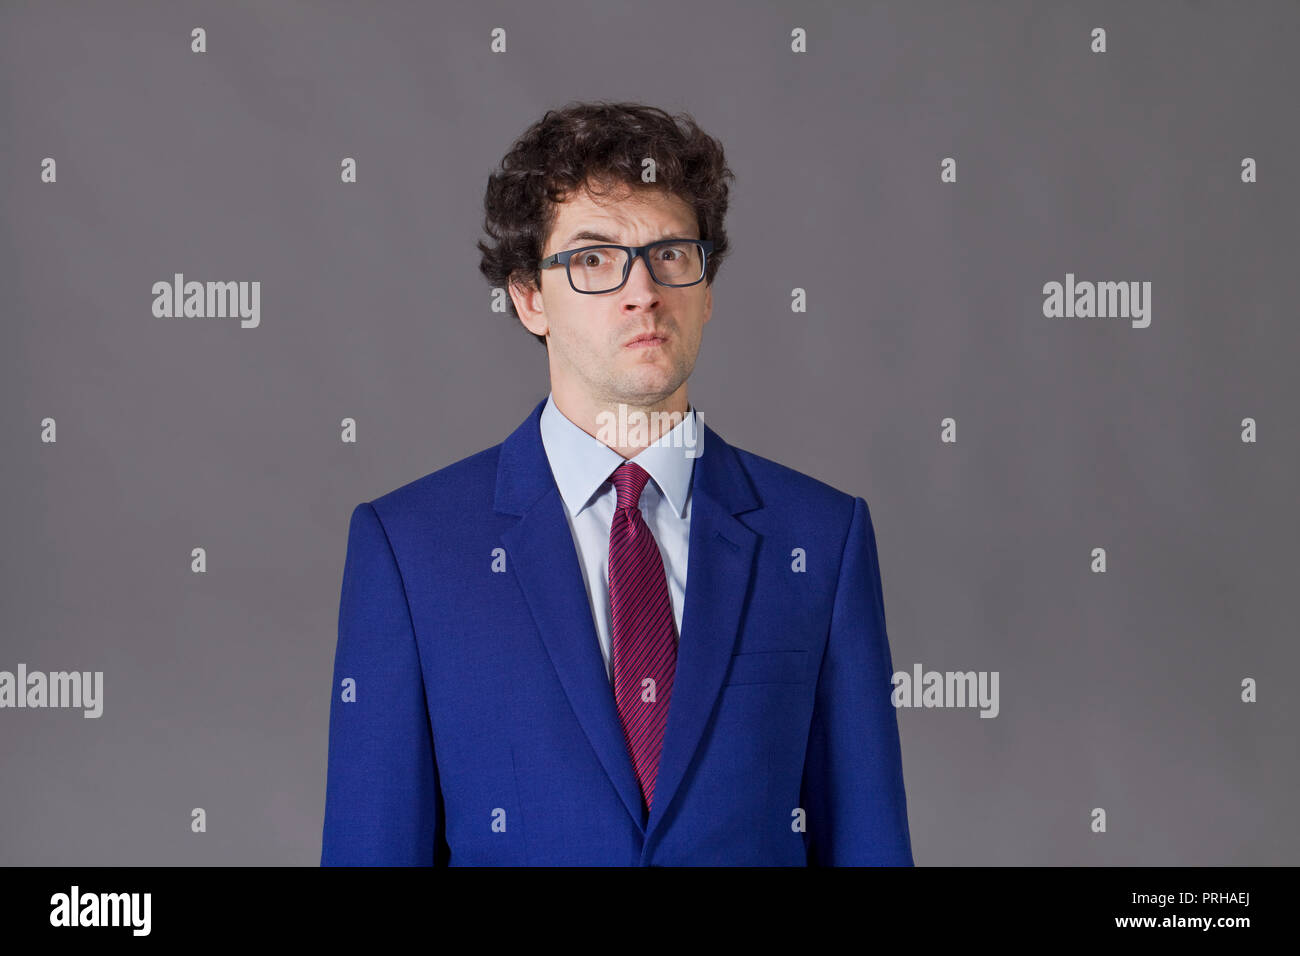 Young boy with glasses and blue suit grimacing - Stock Image